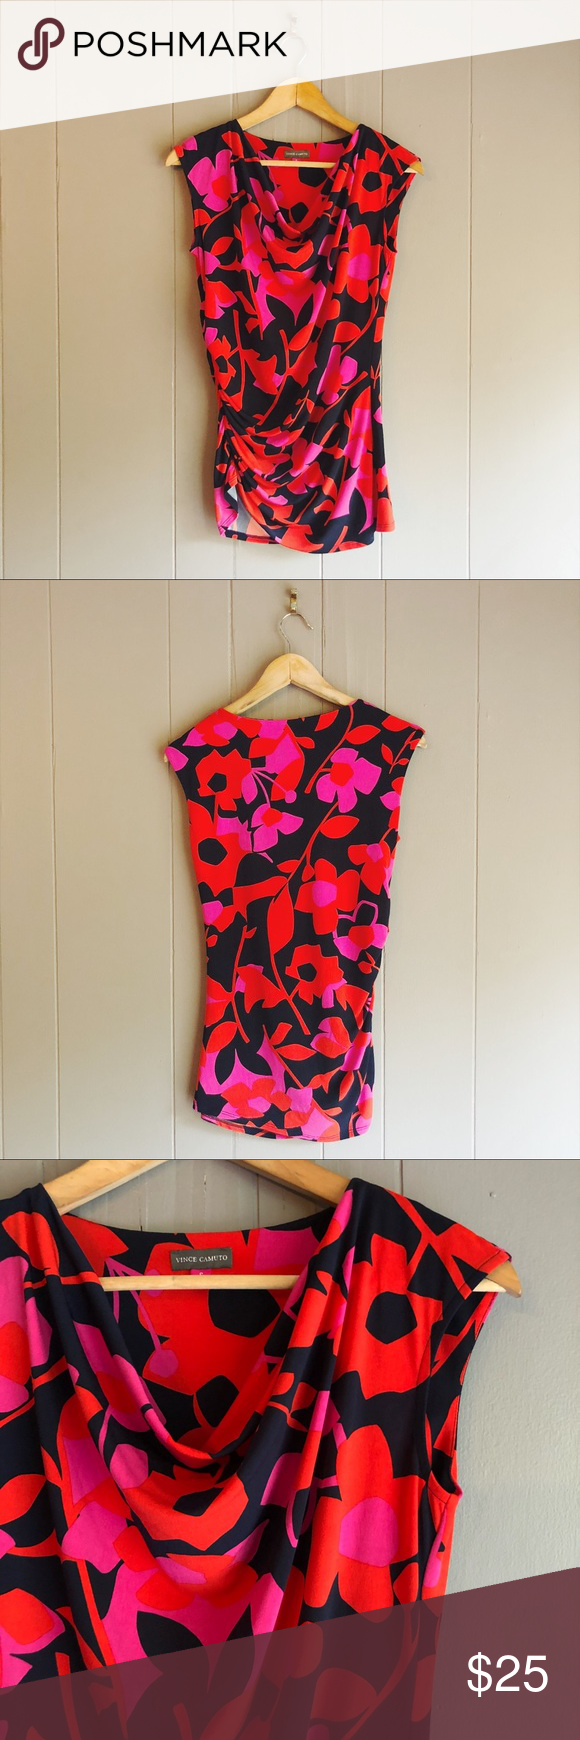 Vince Camuto Floral Print Cowl Neck Sleeveless Top Very fun, pretty, and colorful top in like new co...